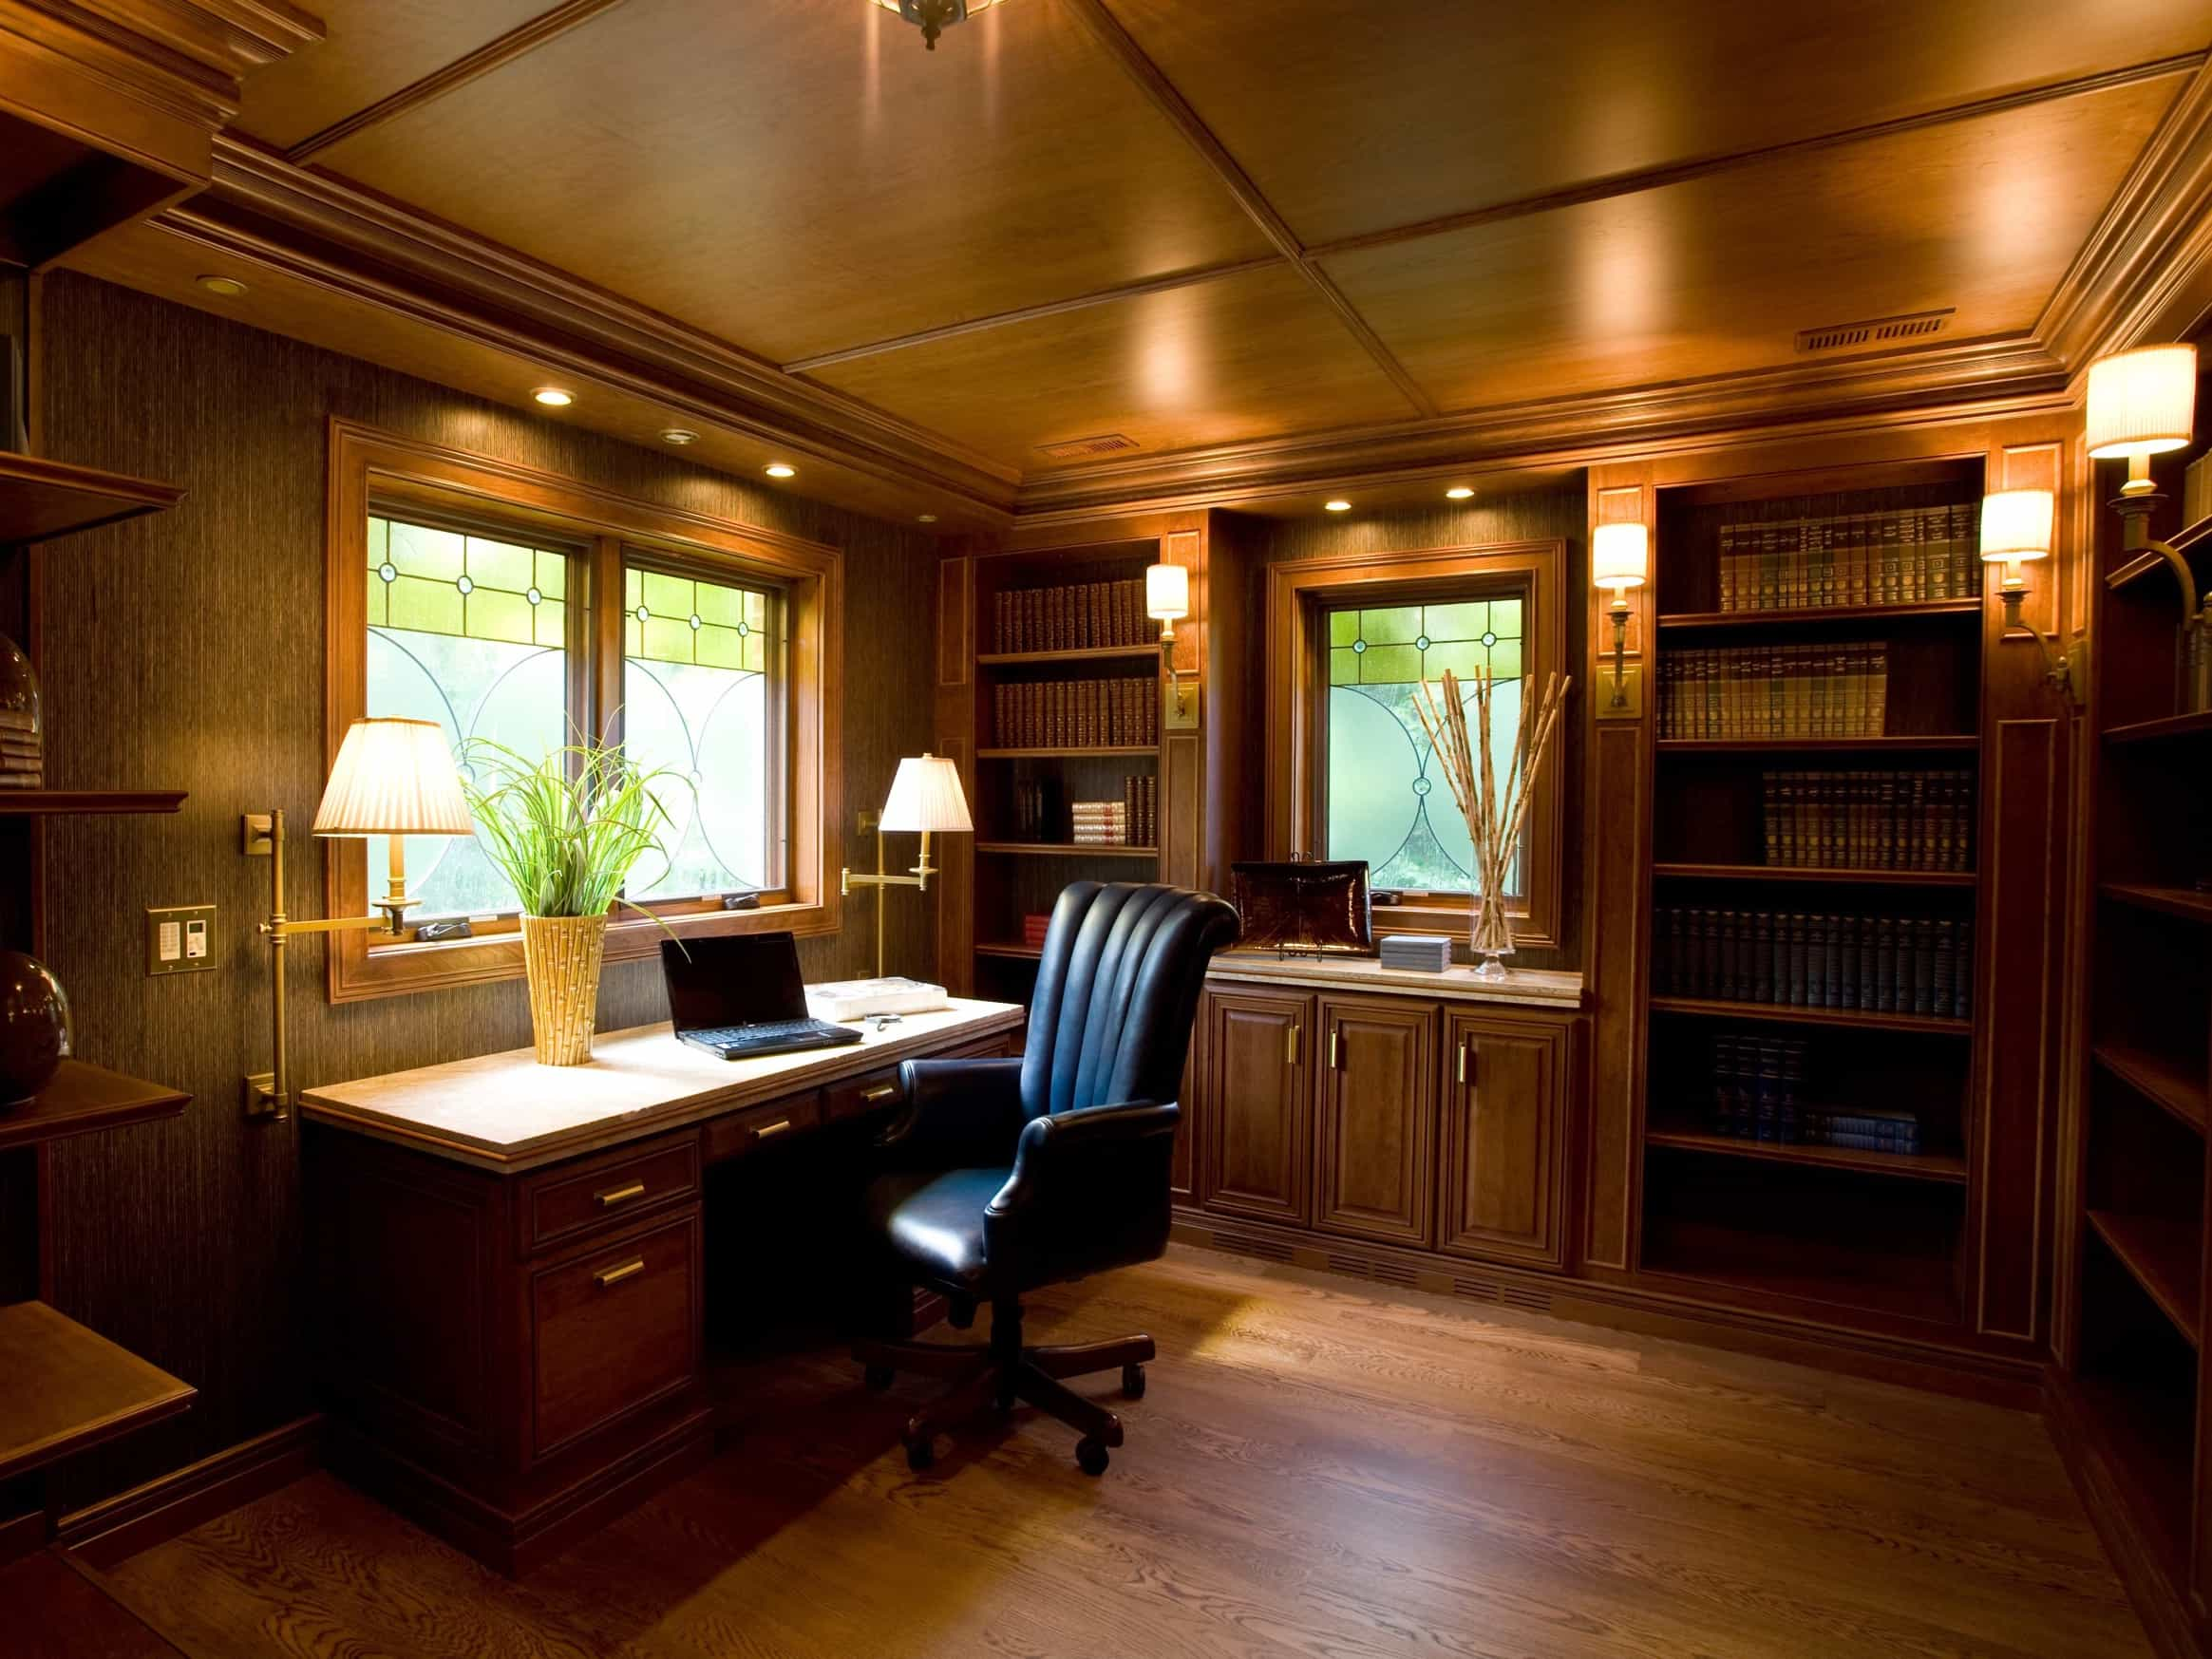 Featured Image of Craftsman Style Wood Ceiling And Custom Built In Cabinets For Home Office